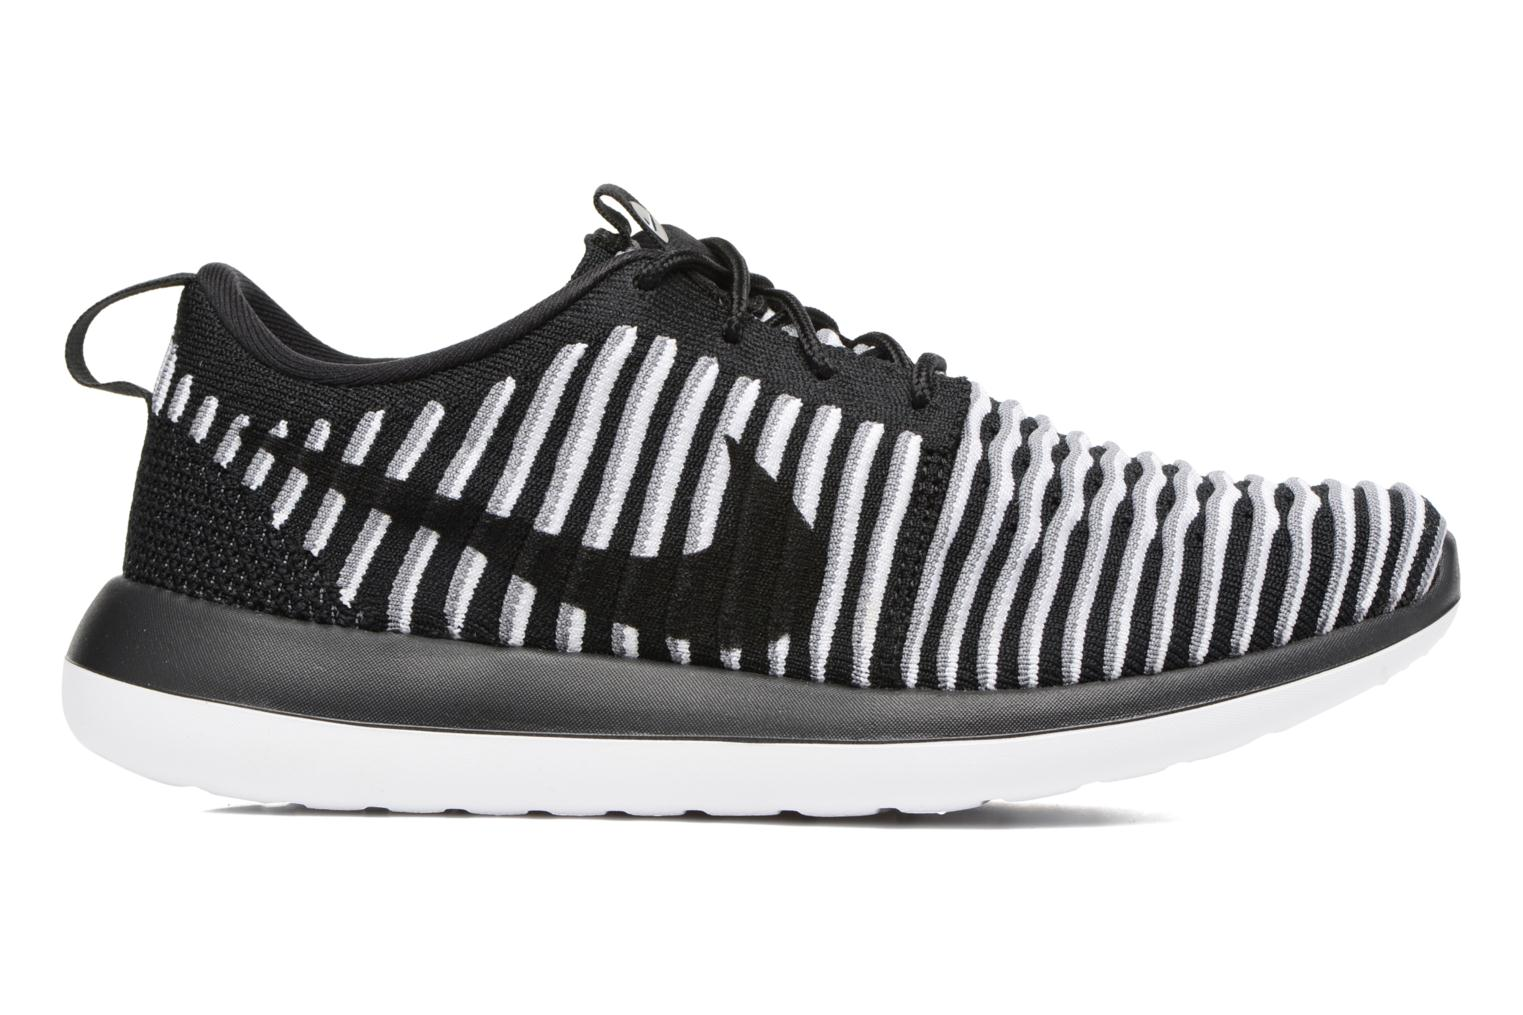 W Nike Roshe Two Flyknit Black/black-white-cool grey